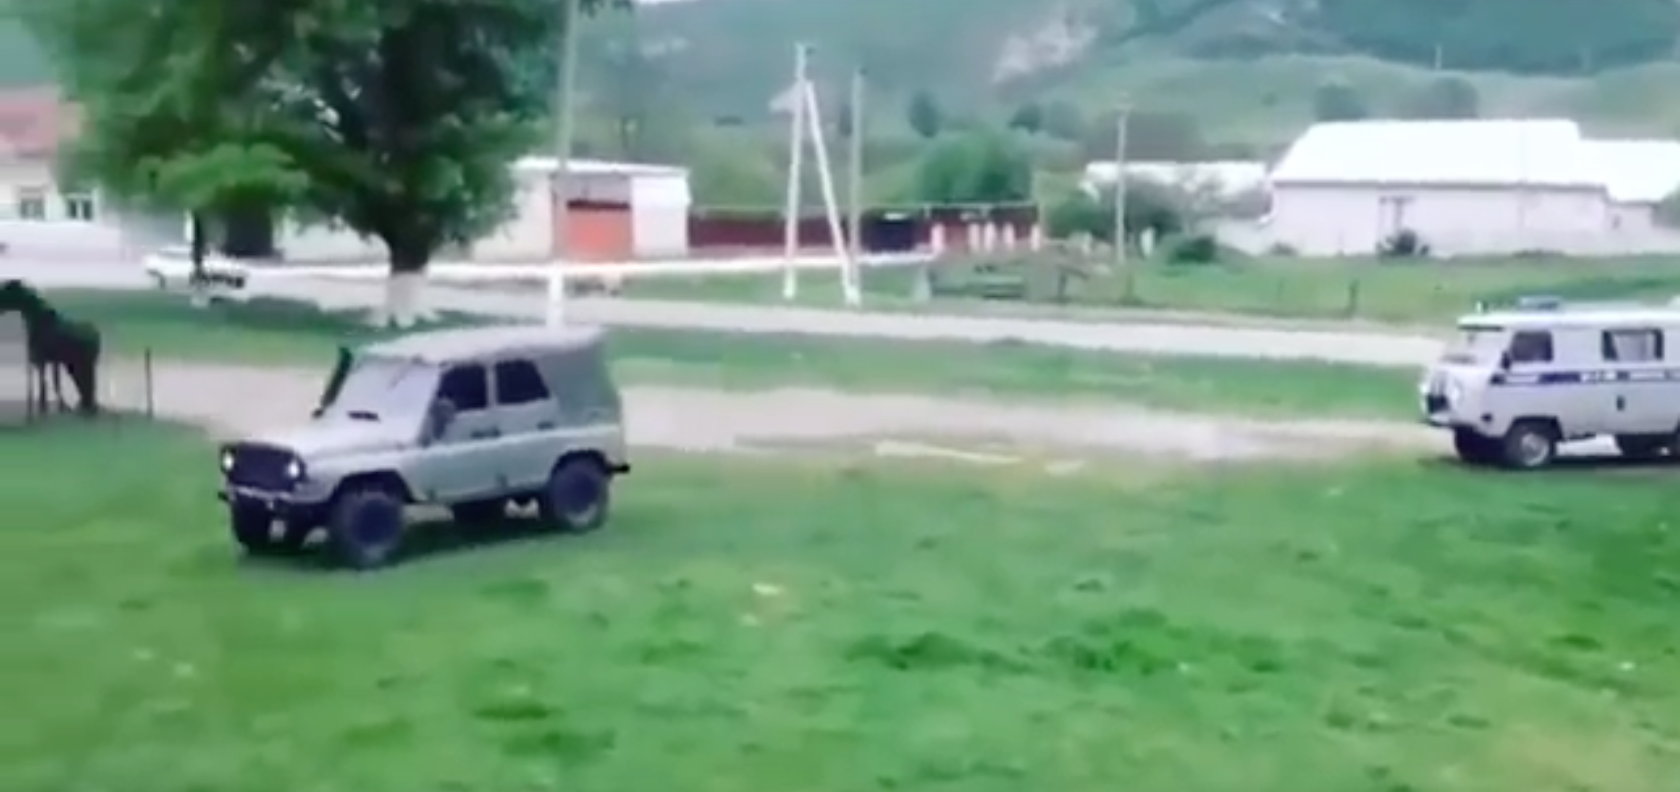 Russian Police Need New Cars If This Is The Standard…